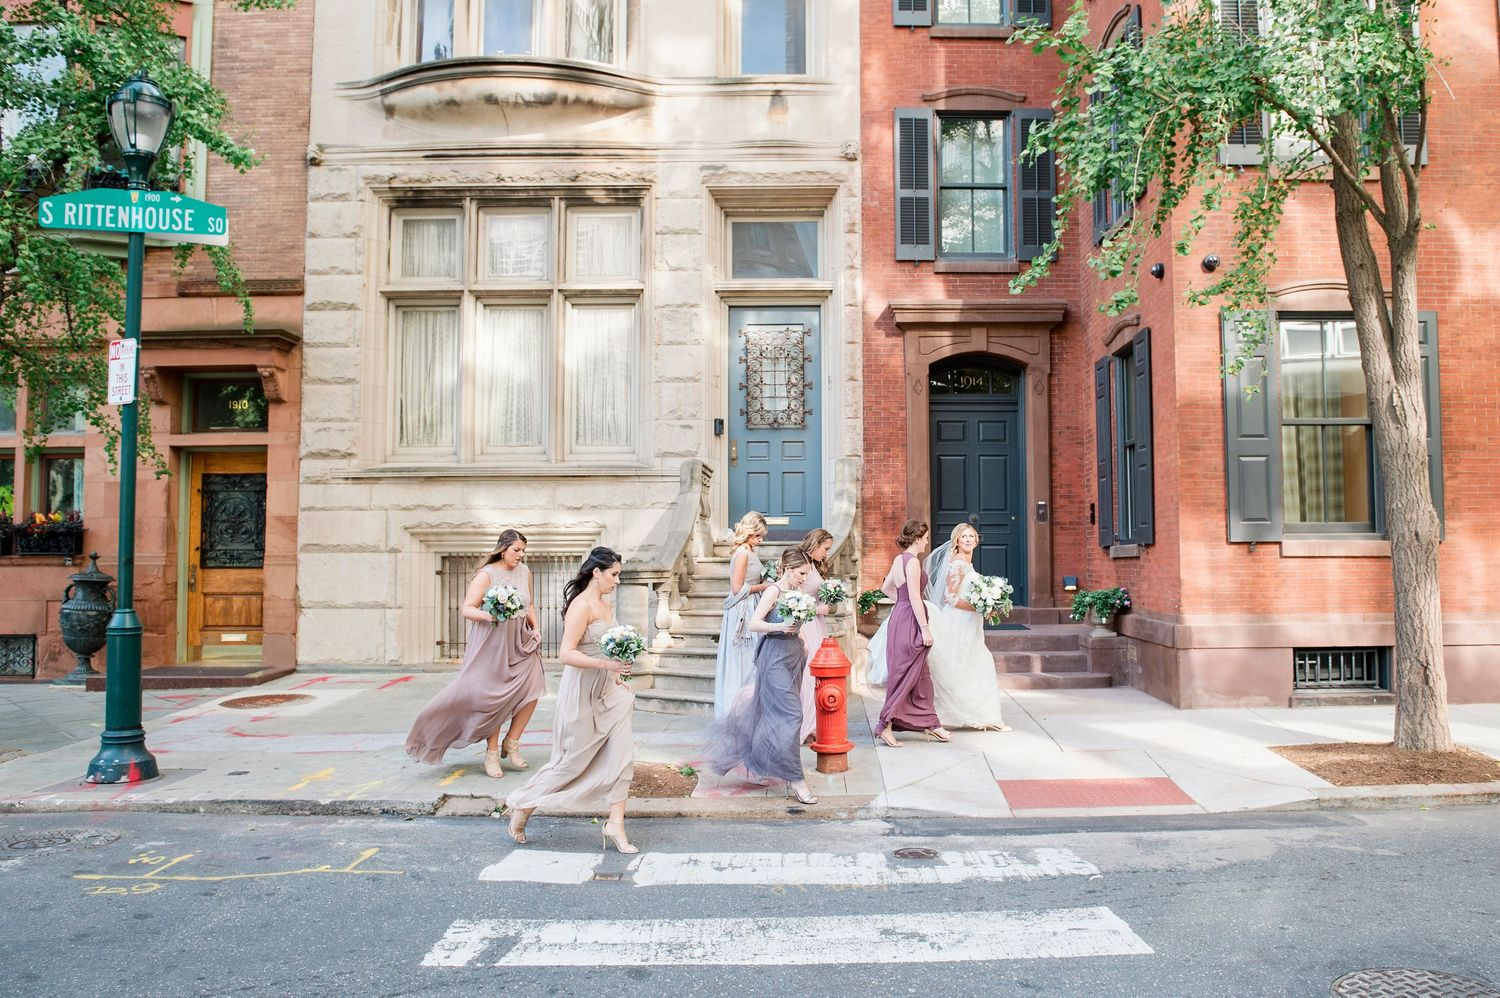 bride and bridesmaids walking in Rittenhouse Square on way to the church